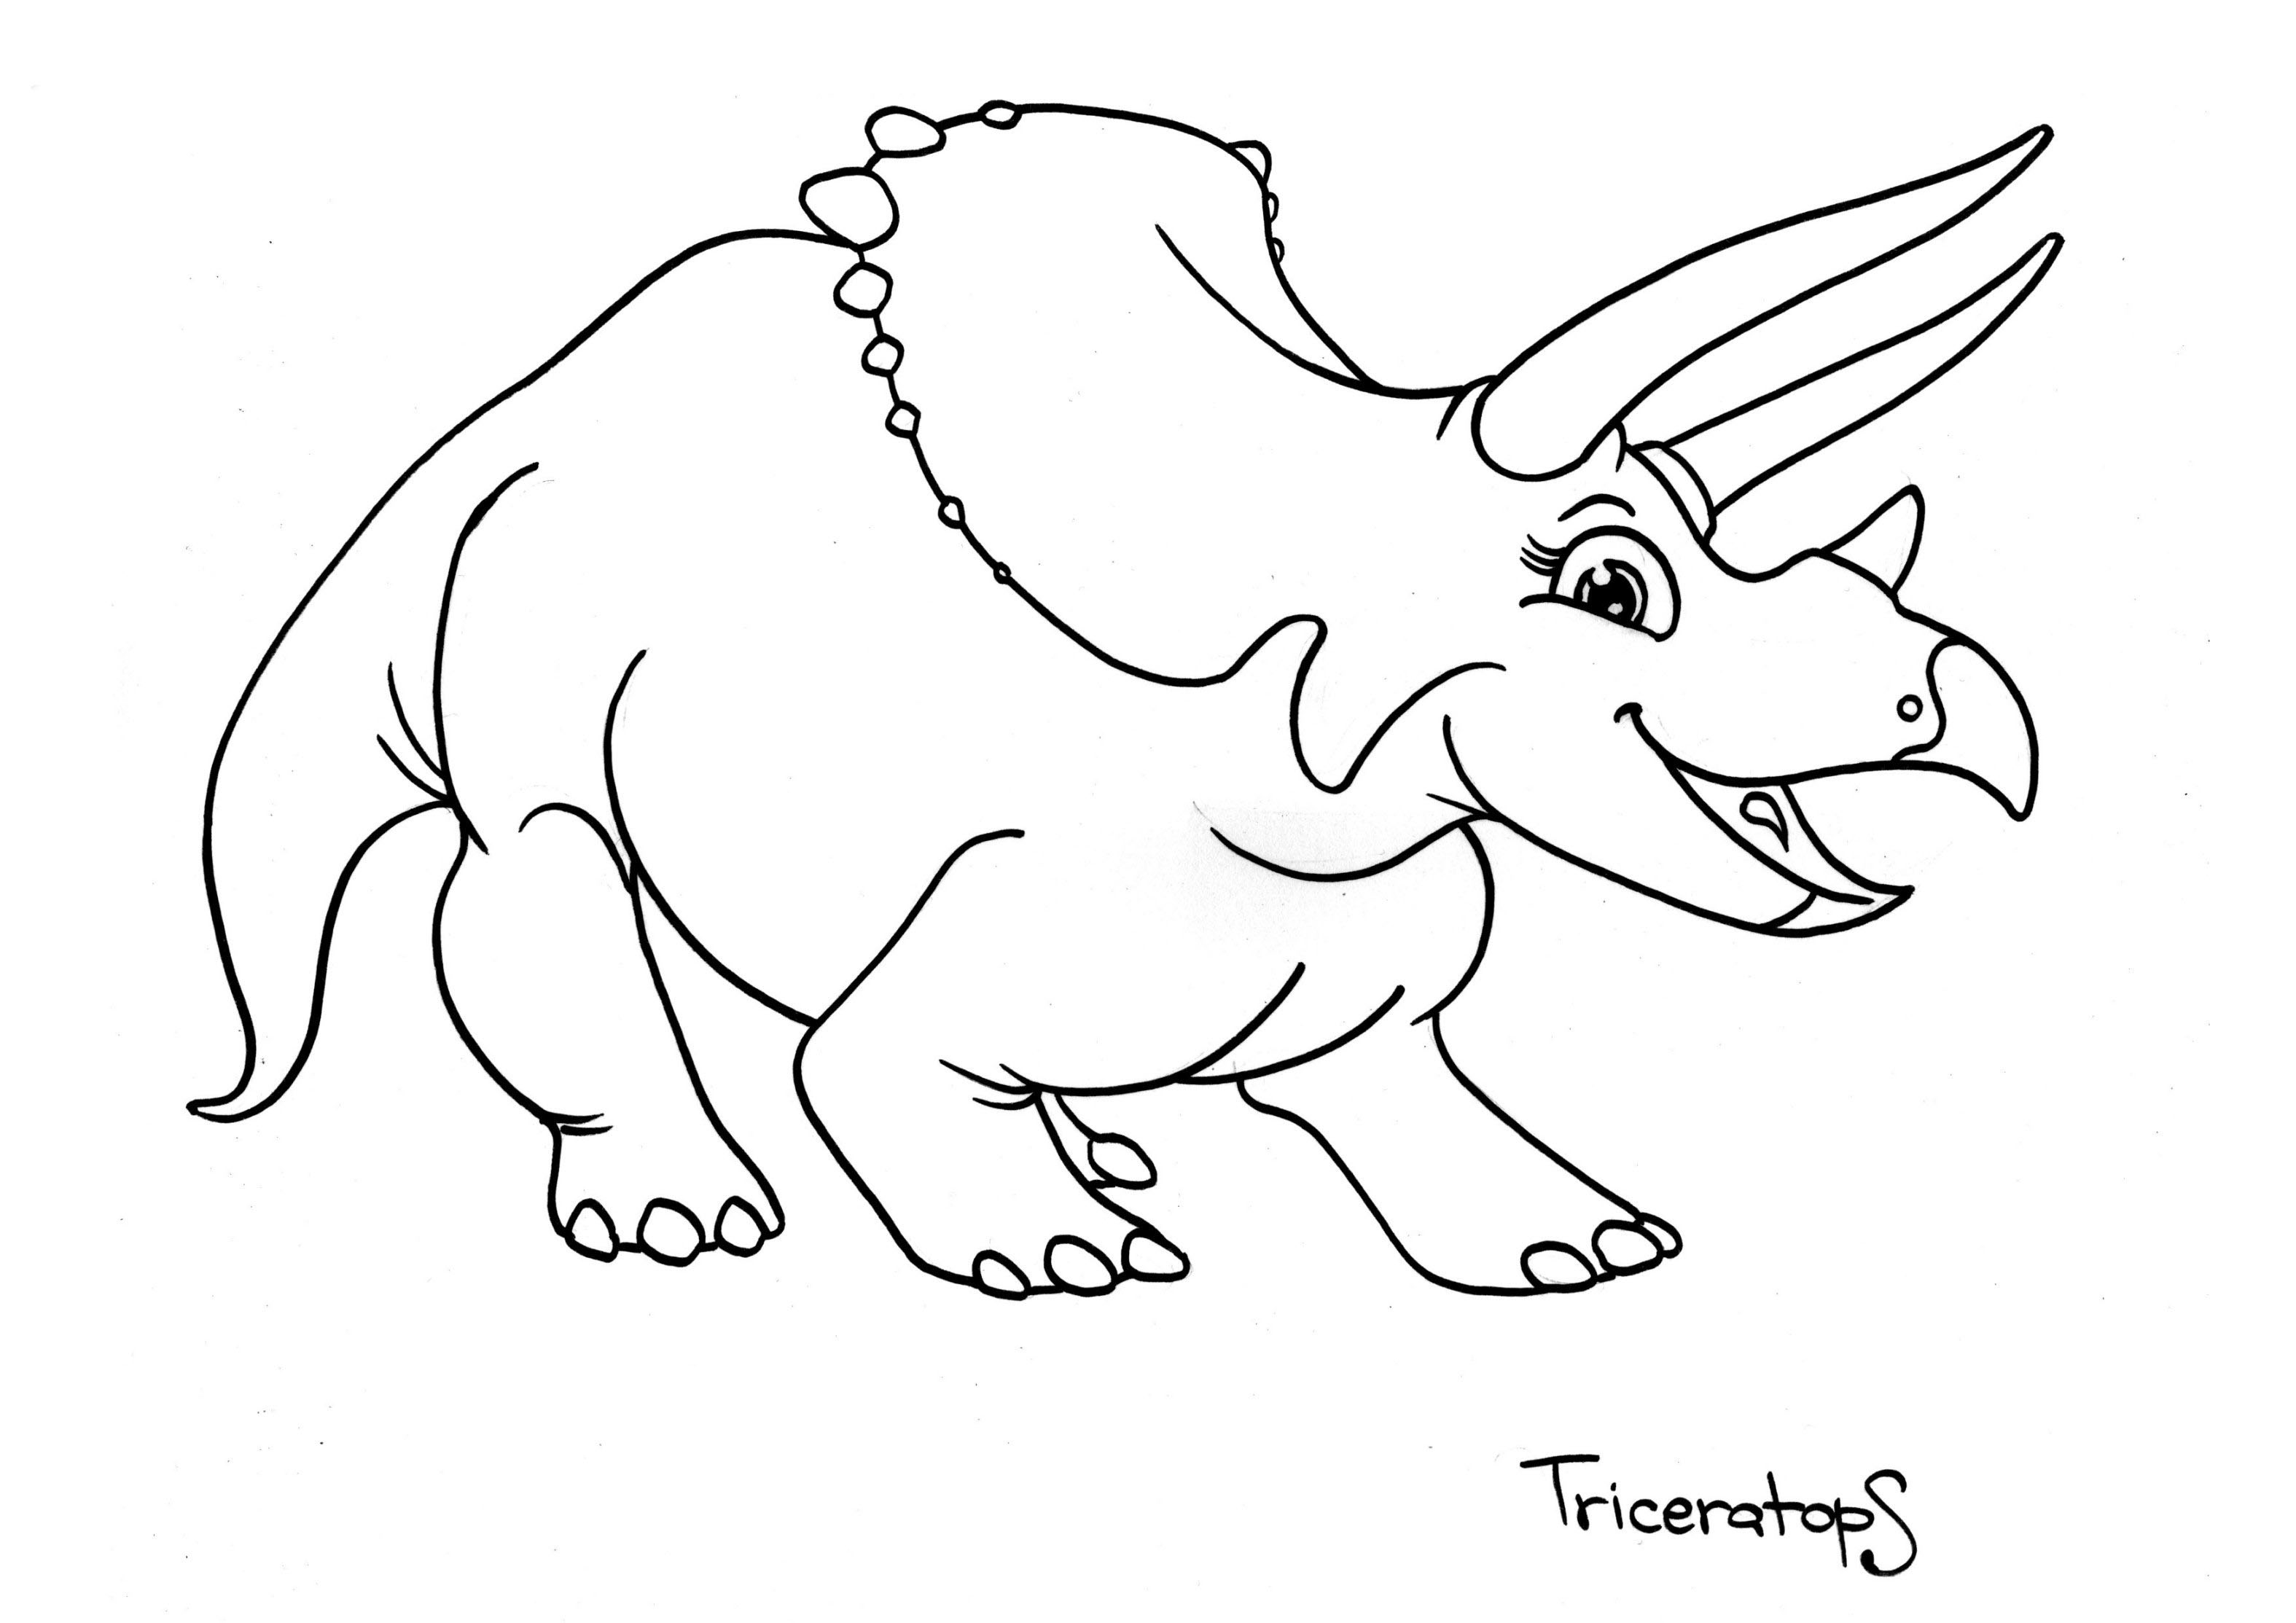 dinosaurs coloring page free printable dinosaur coloring pages for kids art hearty coloring dinosaurs page